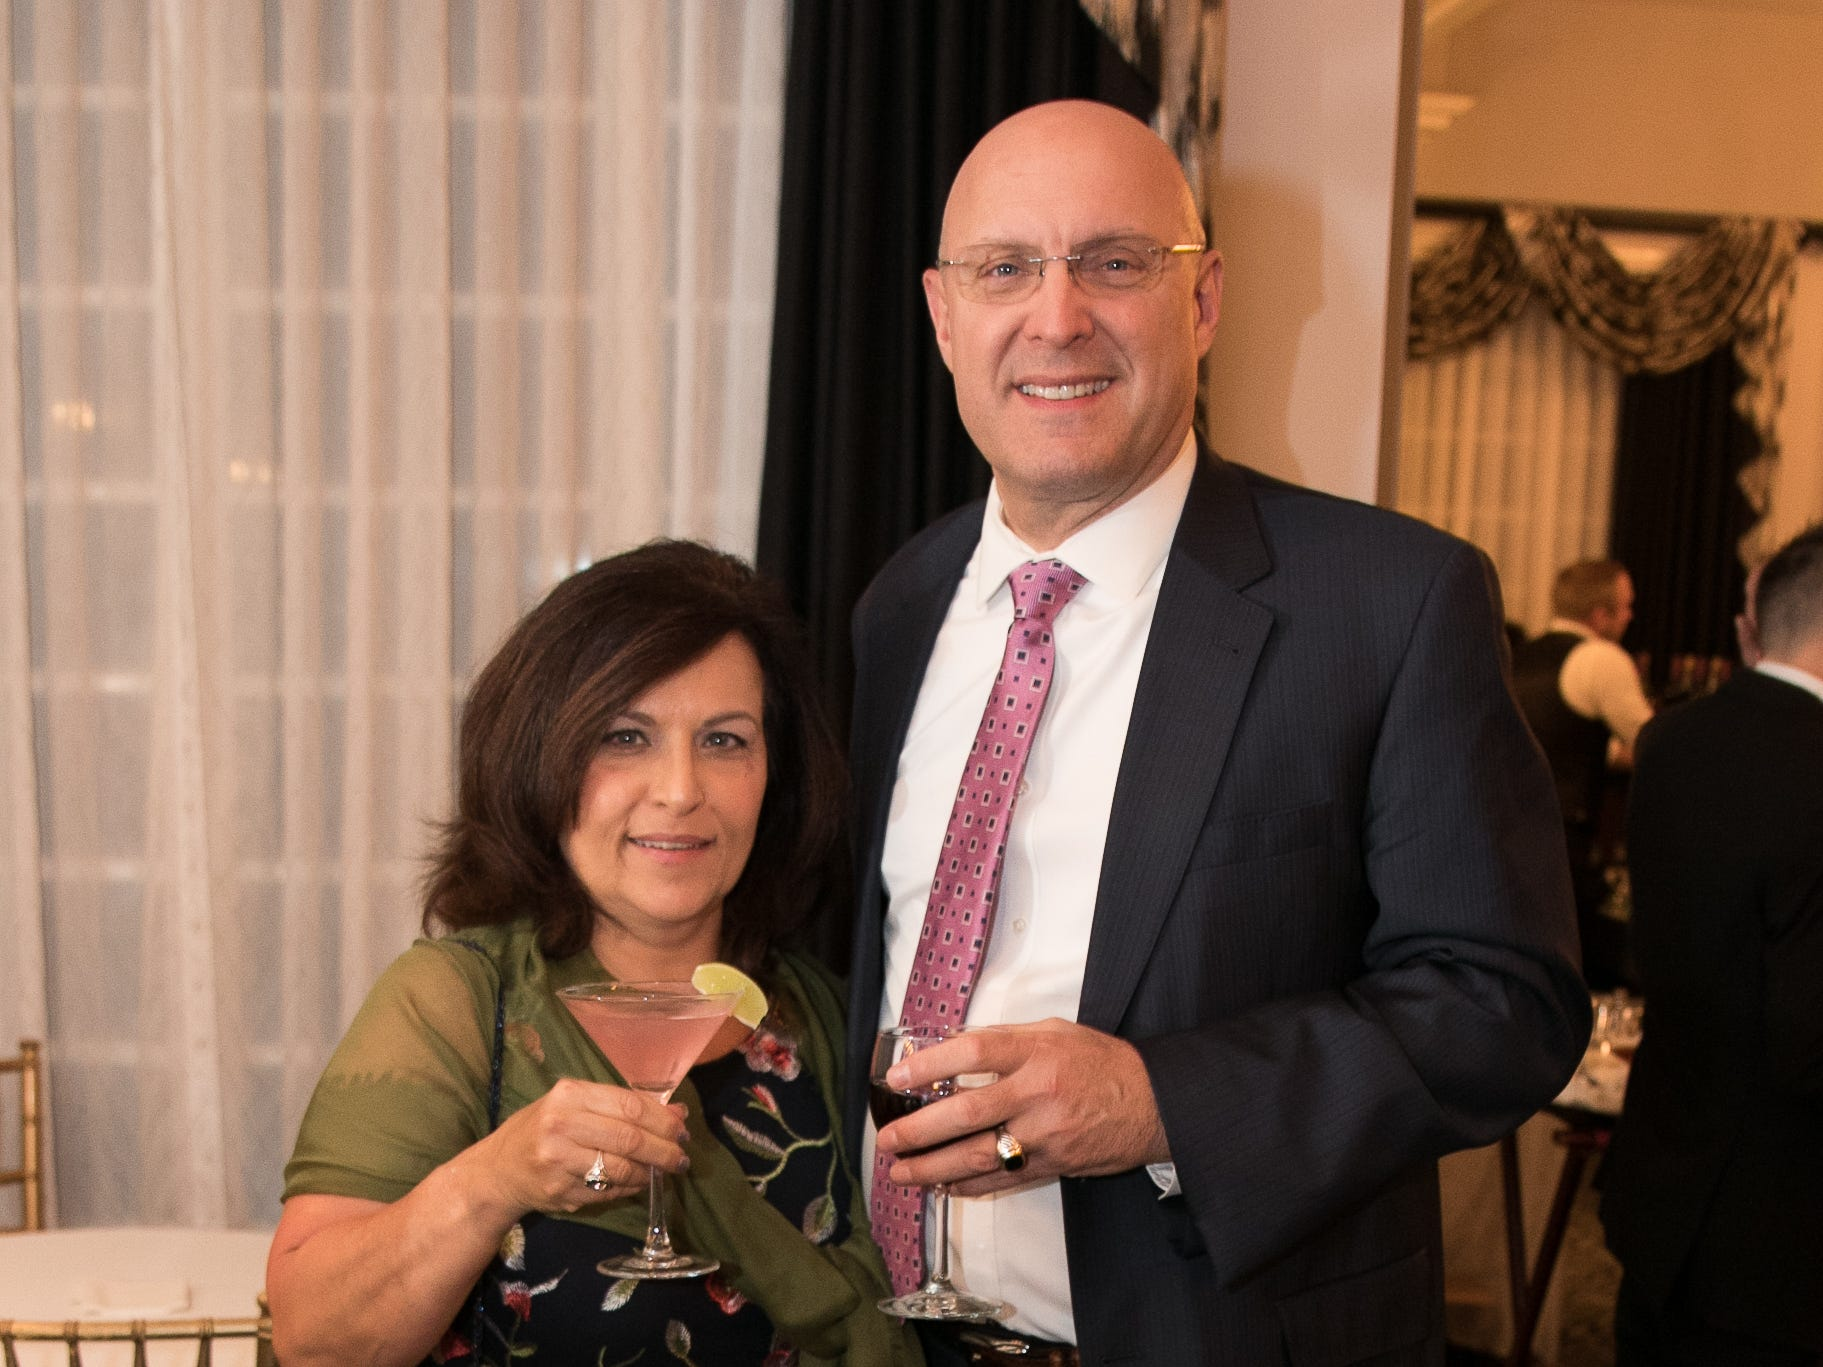 Anne Marino, Vincent Blazewicz. The Bergen Volunteer Center celebrated its 10th anniversary of the Bergen LEADS program at The Hearts of Gold Dinner and Auction at the Stony Hill Inn in Hackensack. 11/08/2018